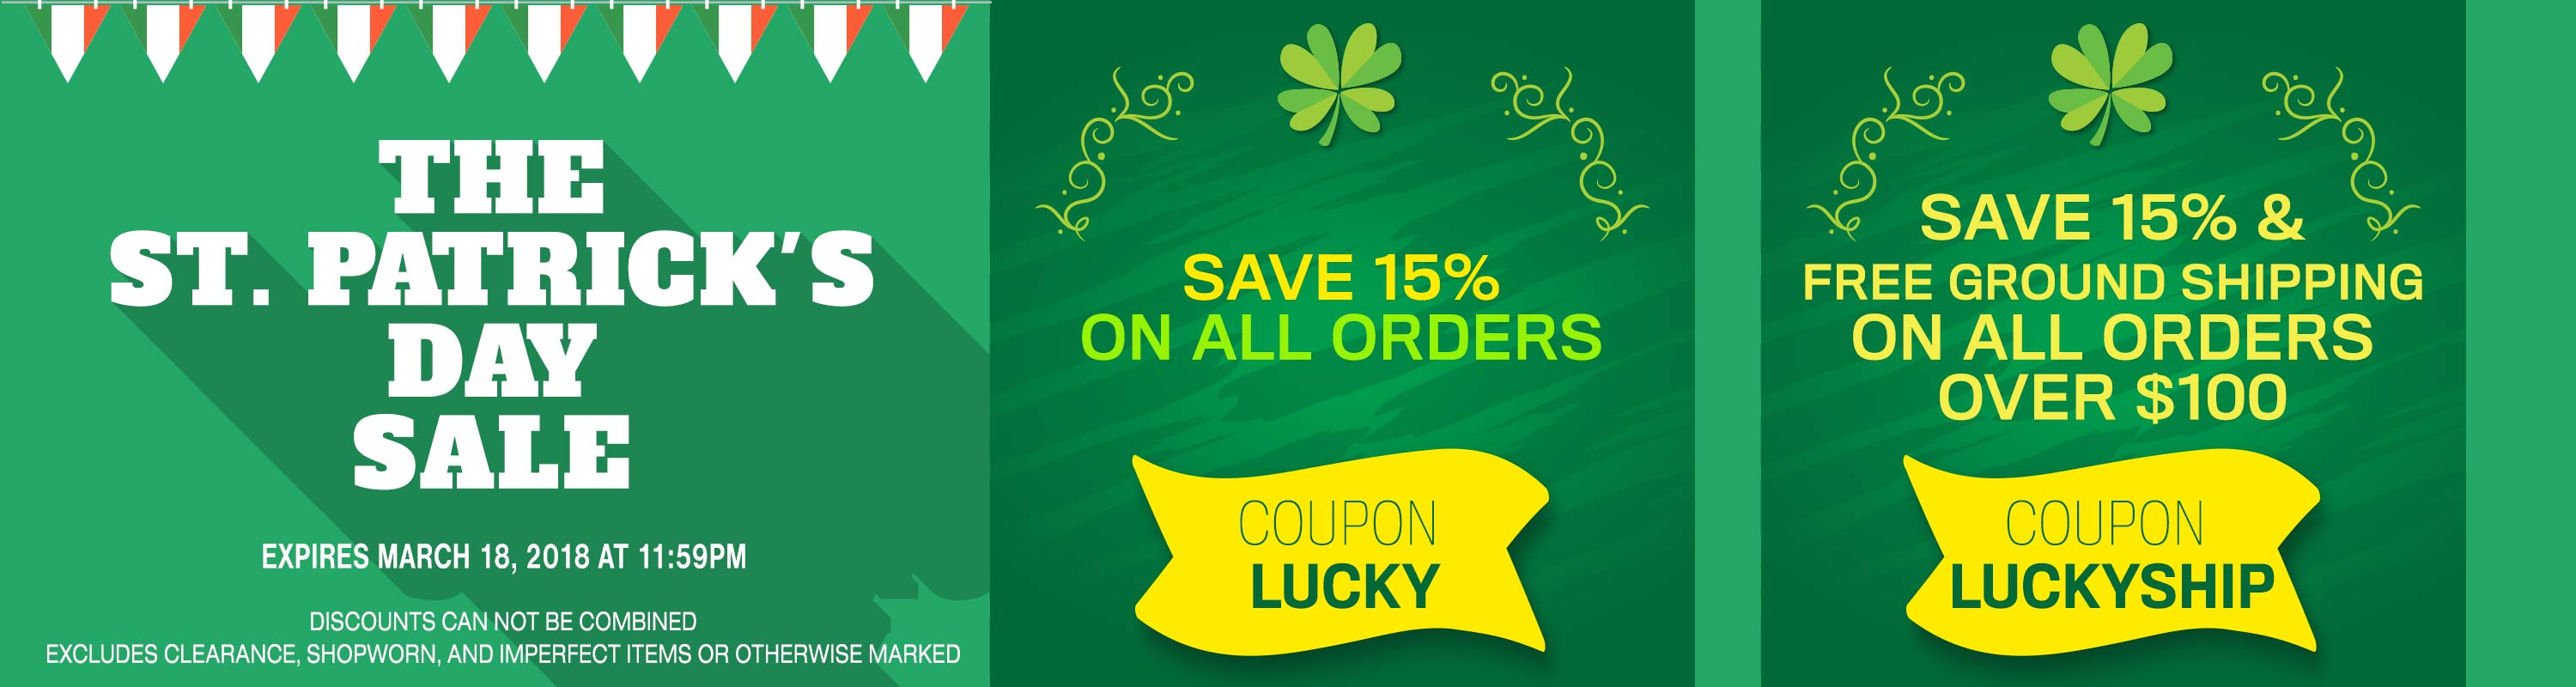 Save 15% Off of Your Next Order with the Coupon Code LUCKY